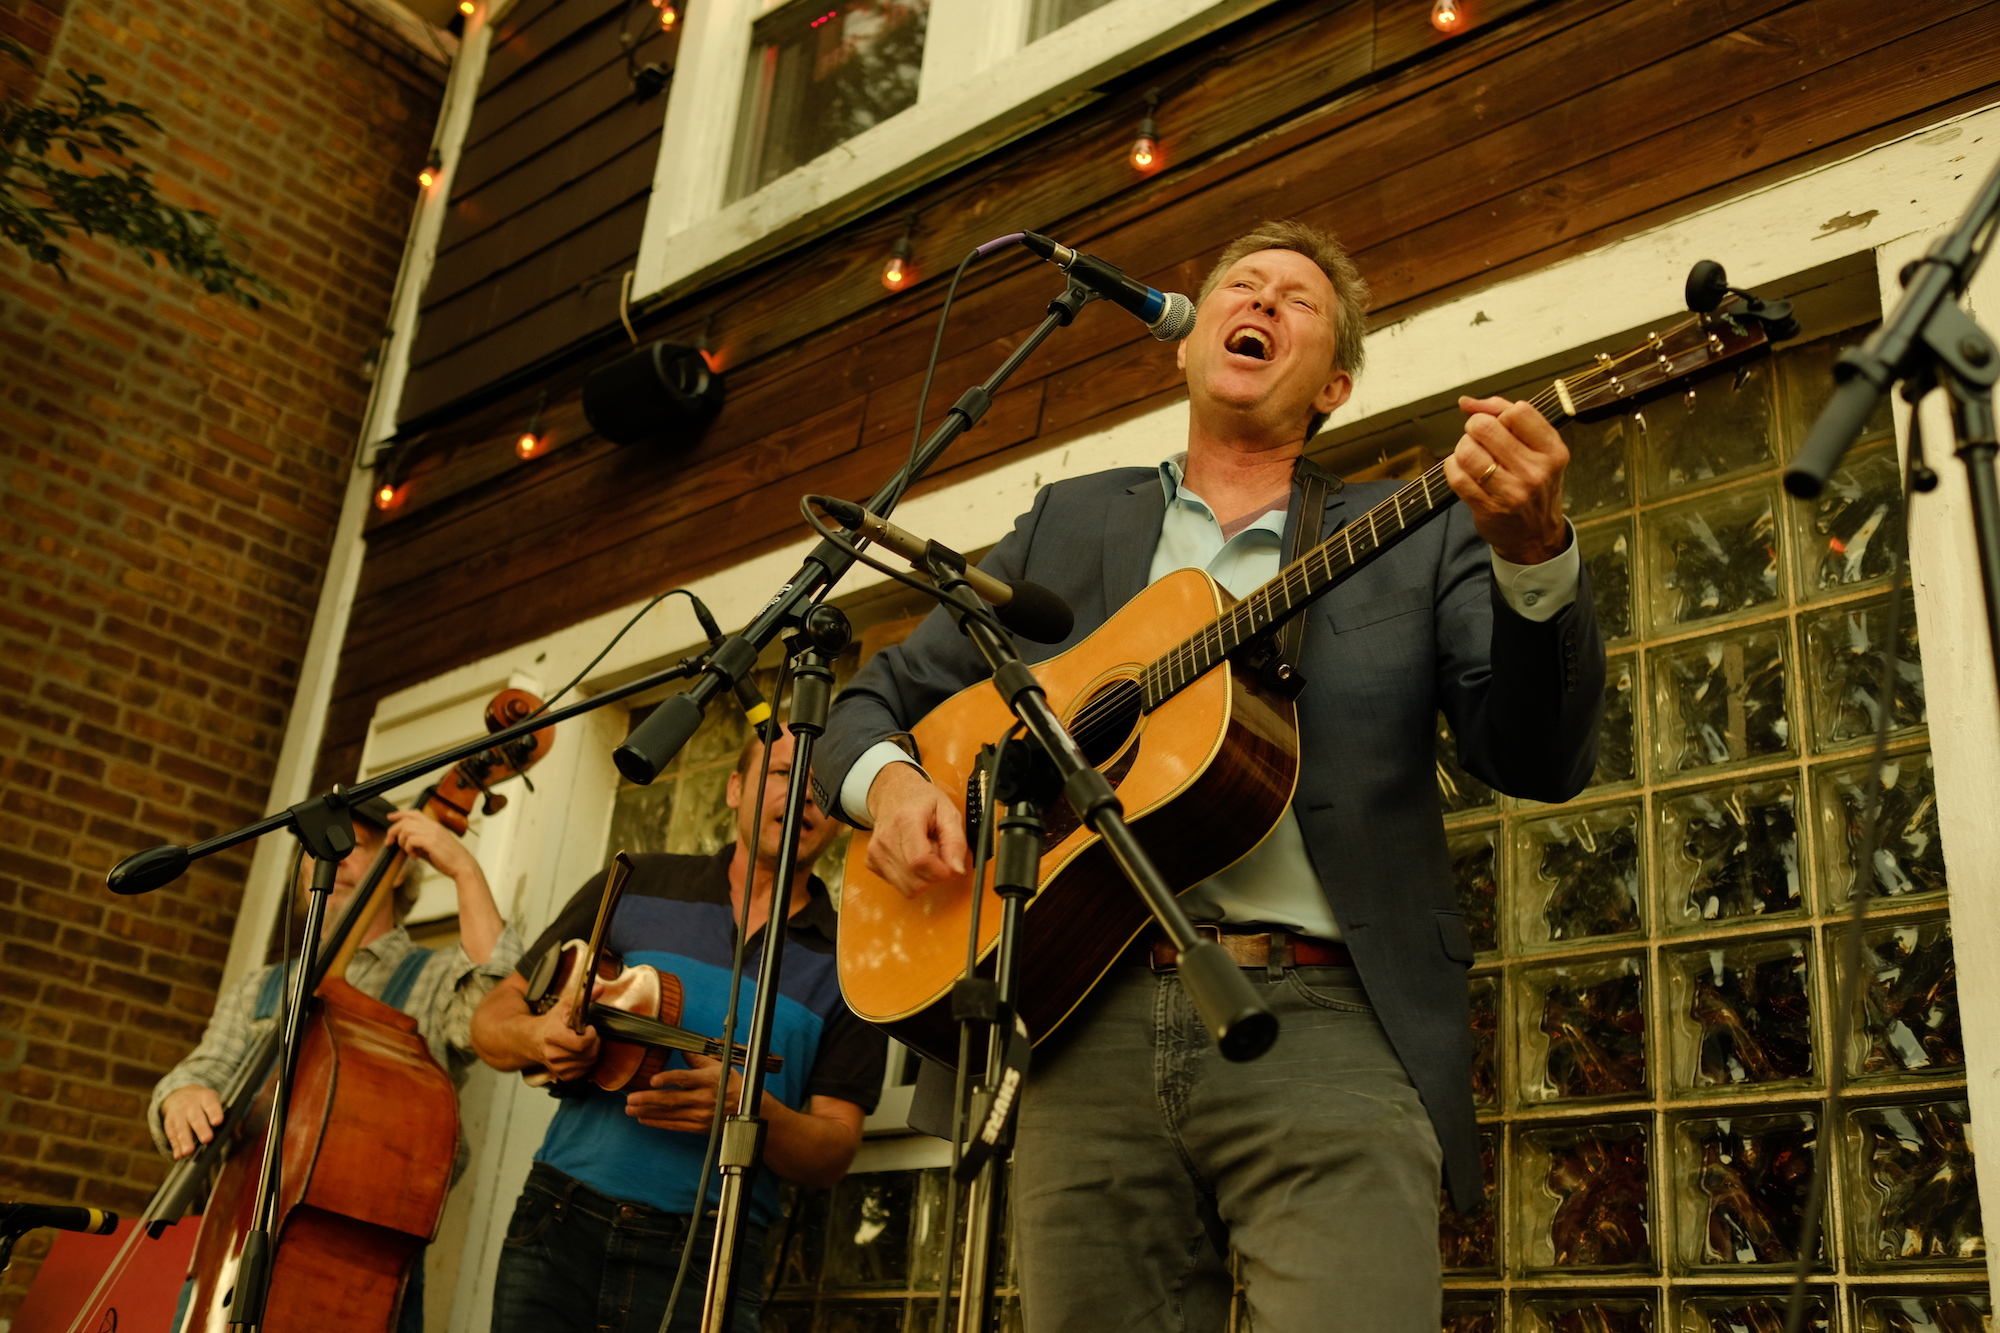 RobBie Fulks - Picnic on the Porch SeriesThe HideoutAugust 9th